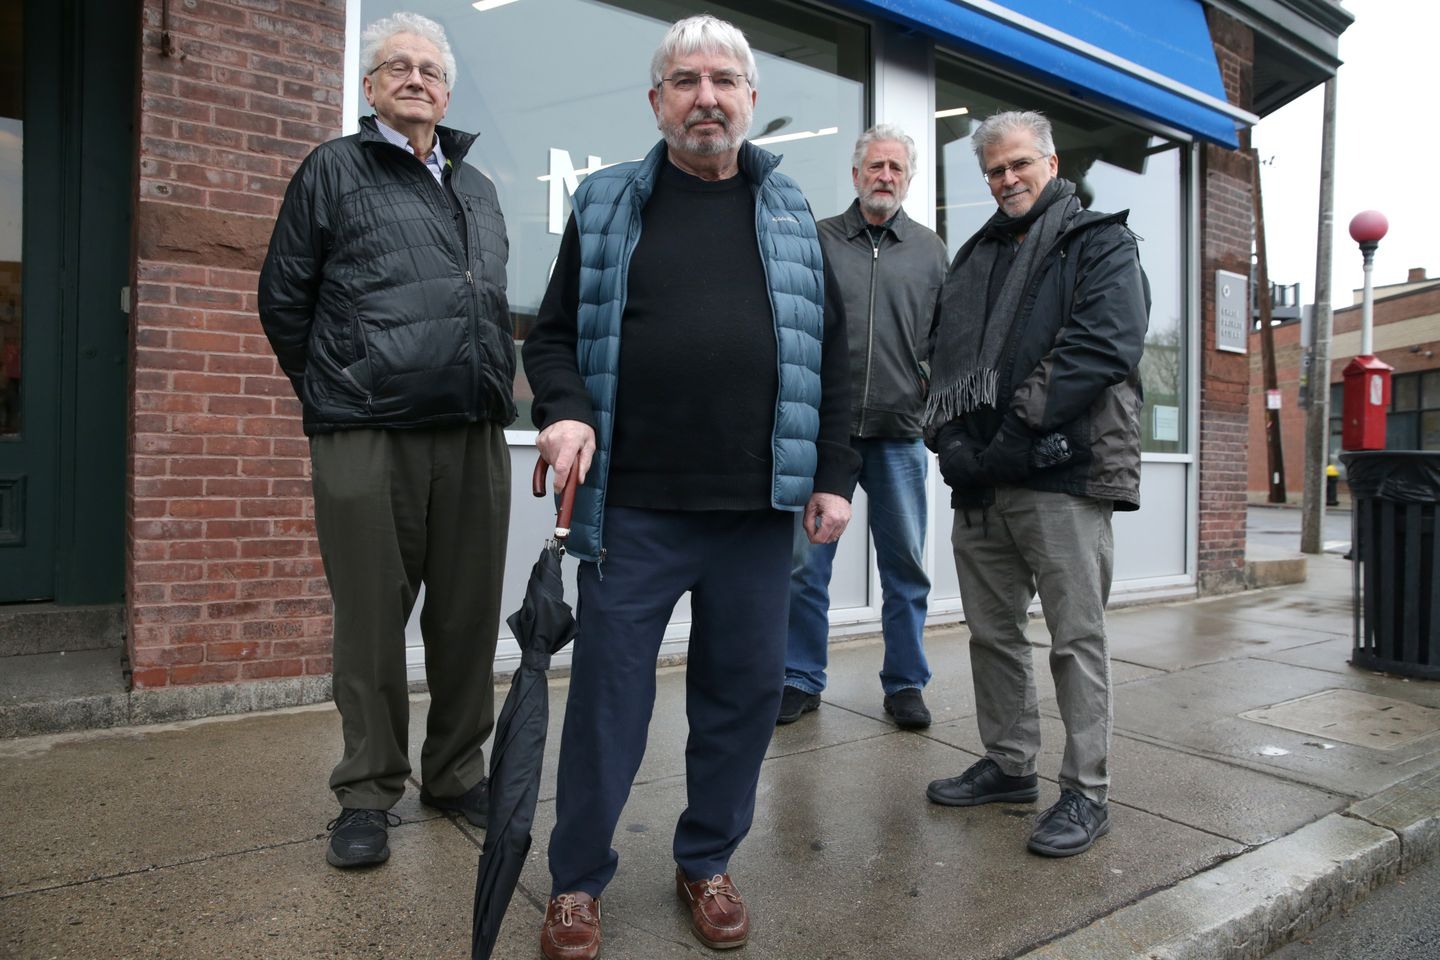 Jamaica Plain residents (from left) Gert Thorn, Kevin Moloney, Michael Epp, and and Ed Forte worked together to persuade Chase to alter the design of a new bank branch.